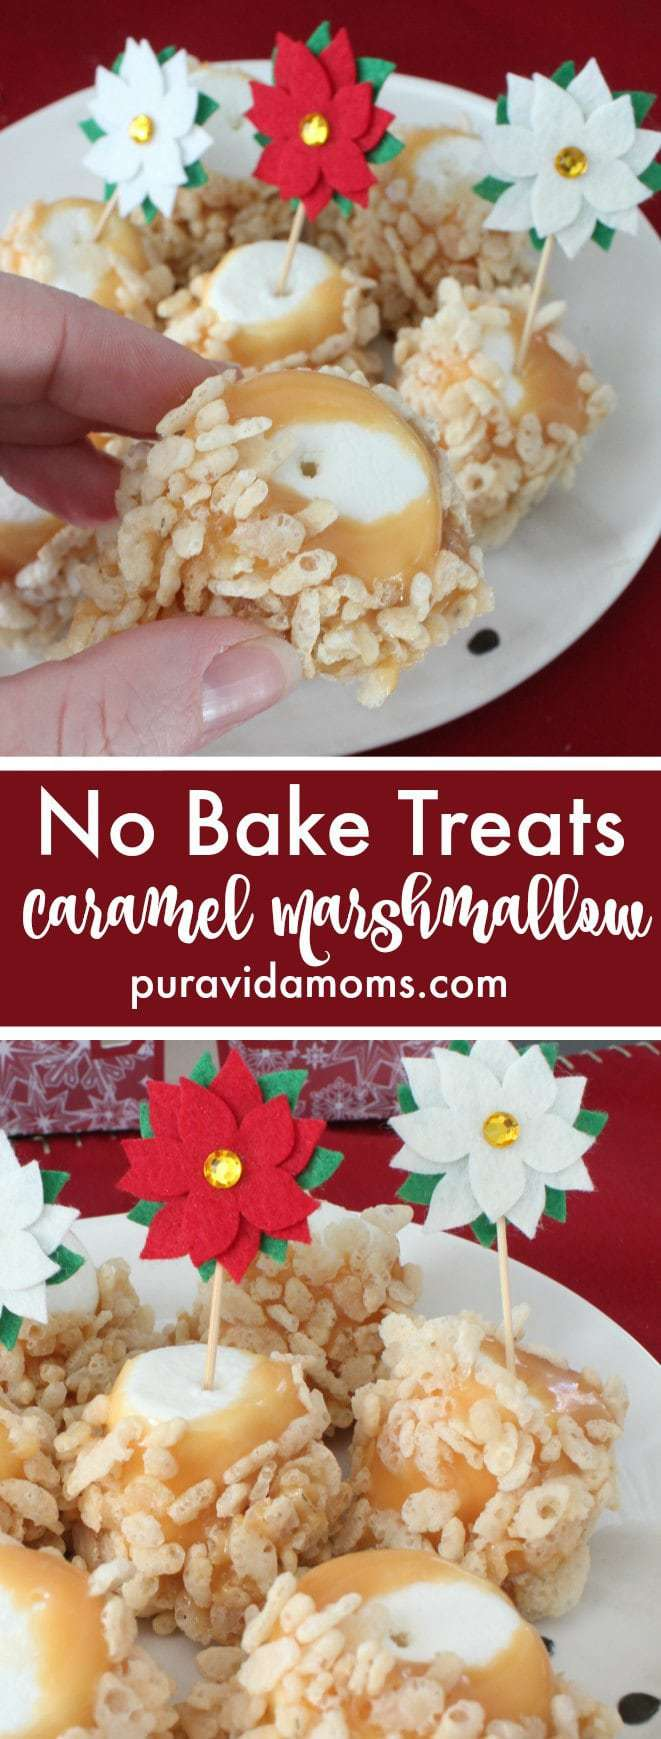 Easy No Bake Caramel Marshmallow Treats